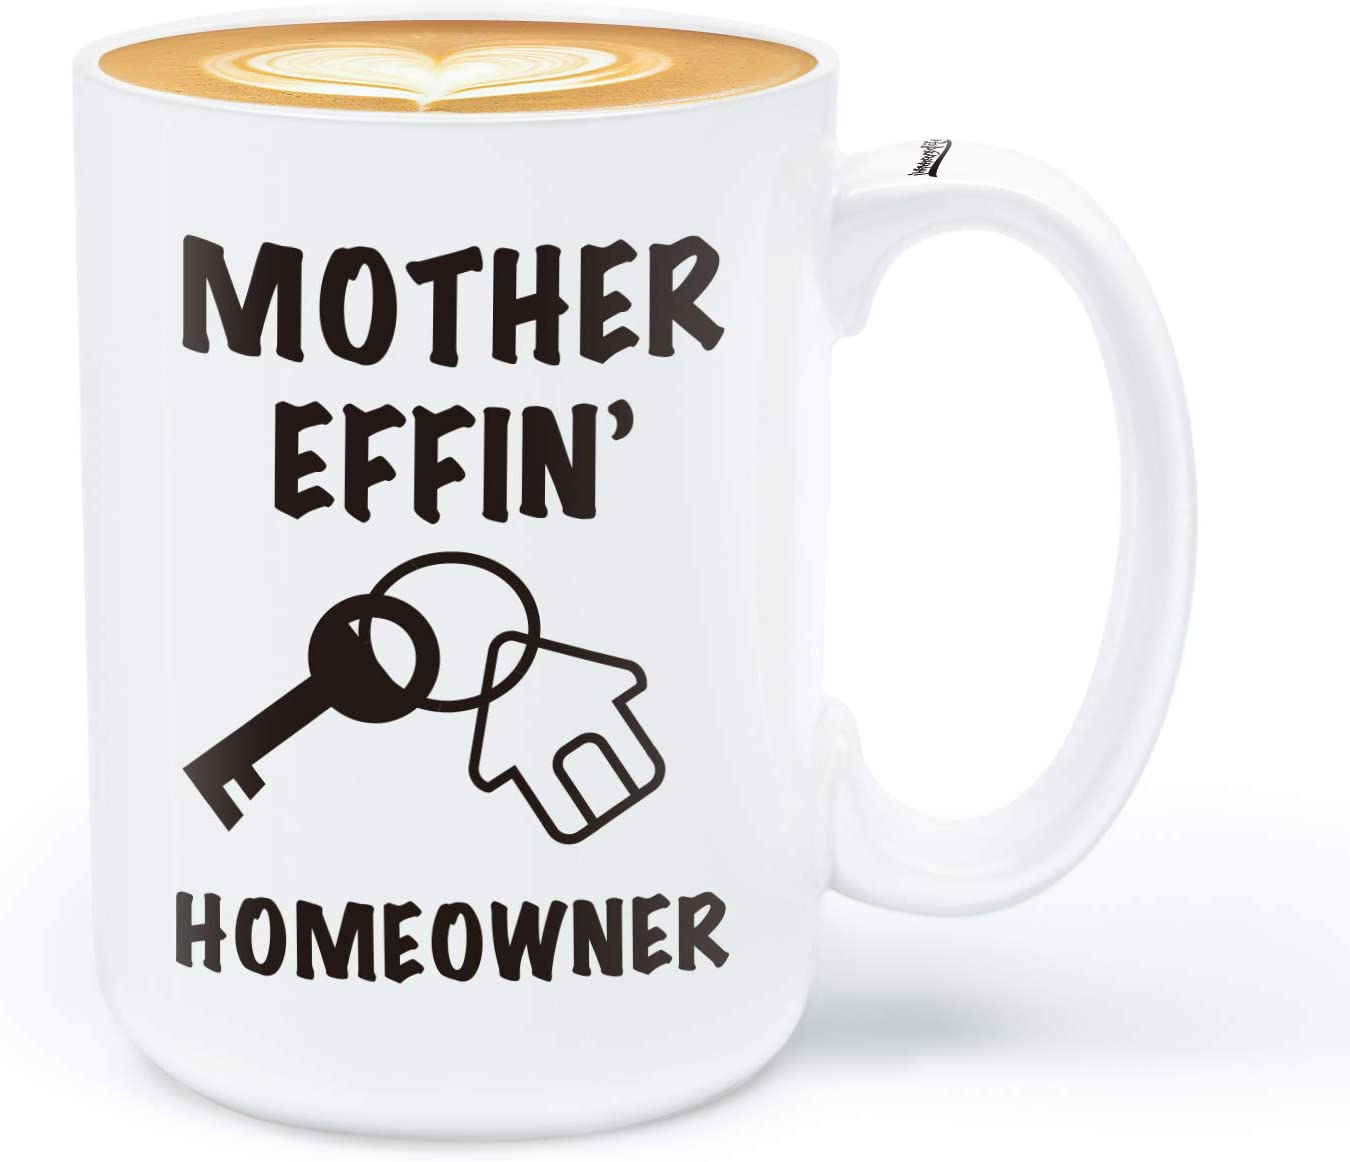 Housewarming Gifts for New Homeowner - Mother Effin Homeowner - 15Oz Funny Coffee Mug for New First Time Home Owner Present